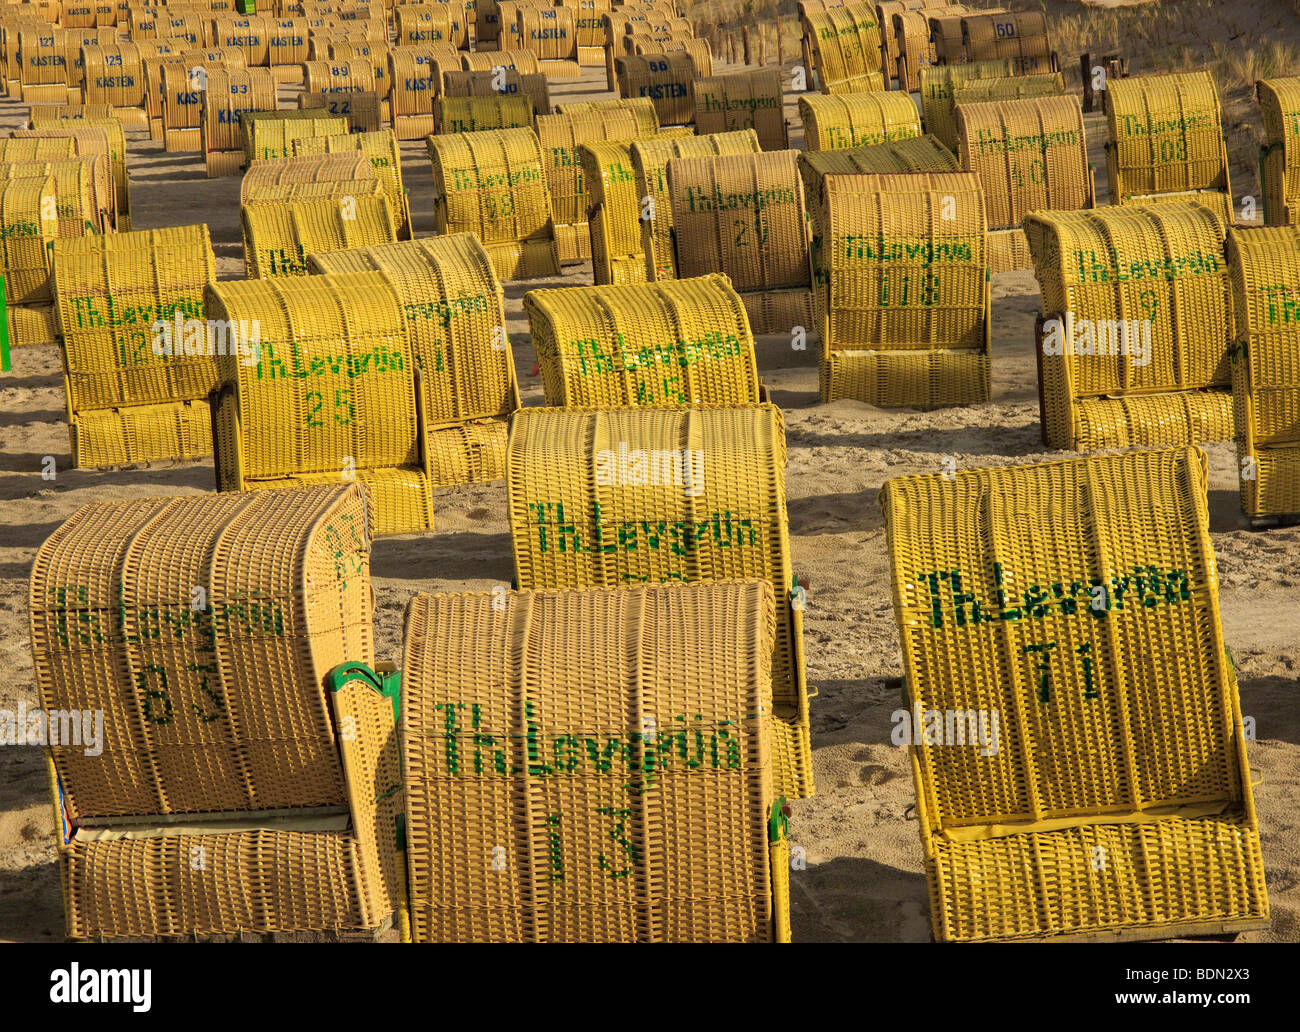 Beach completely crowded with beach chairs in Scharbeutz, Schleswig-Holstein, Germany, Europe - Stock Image